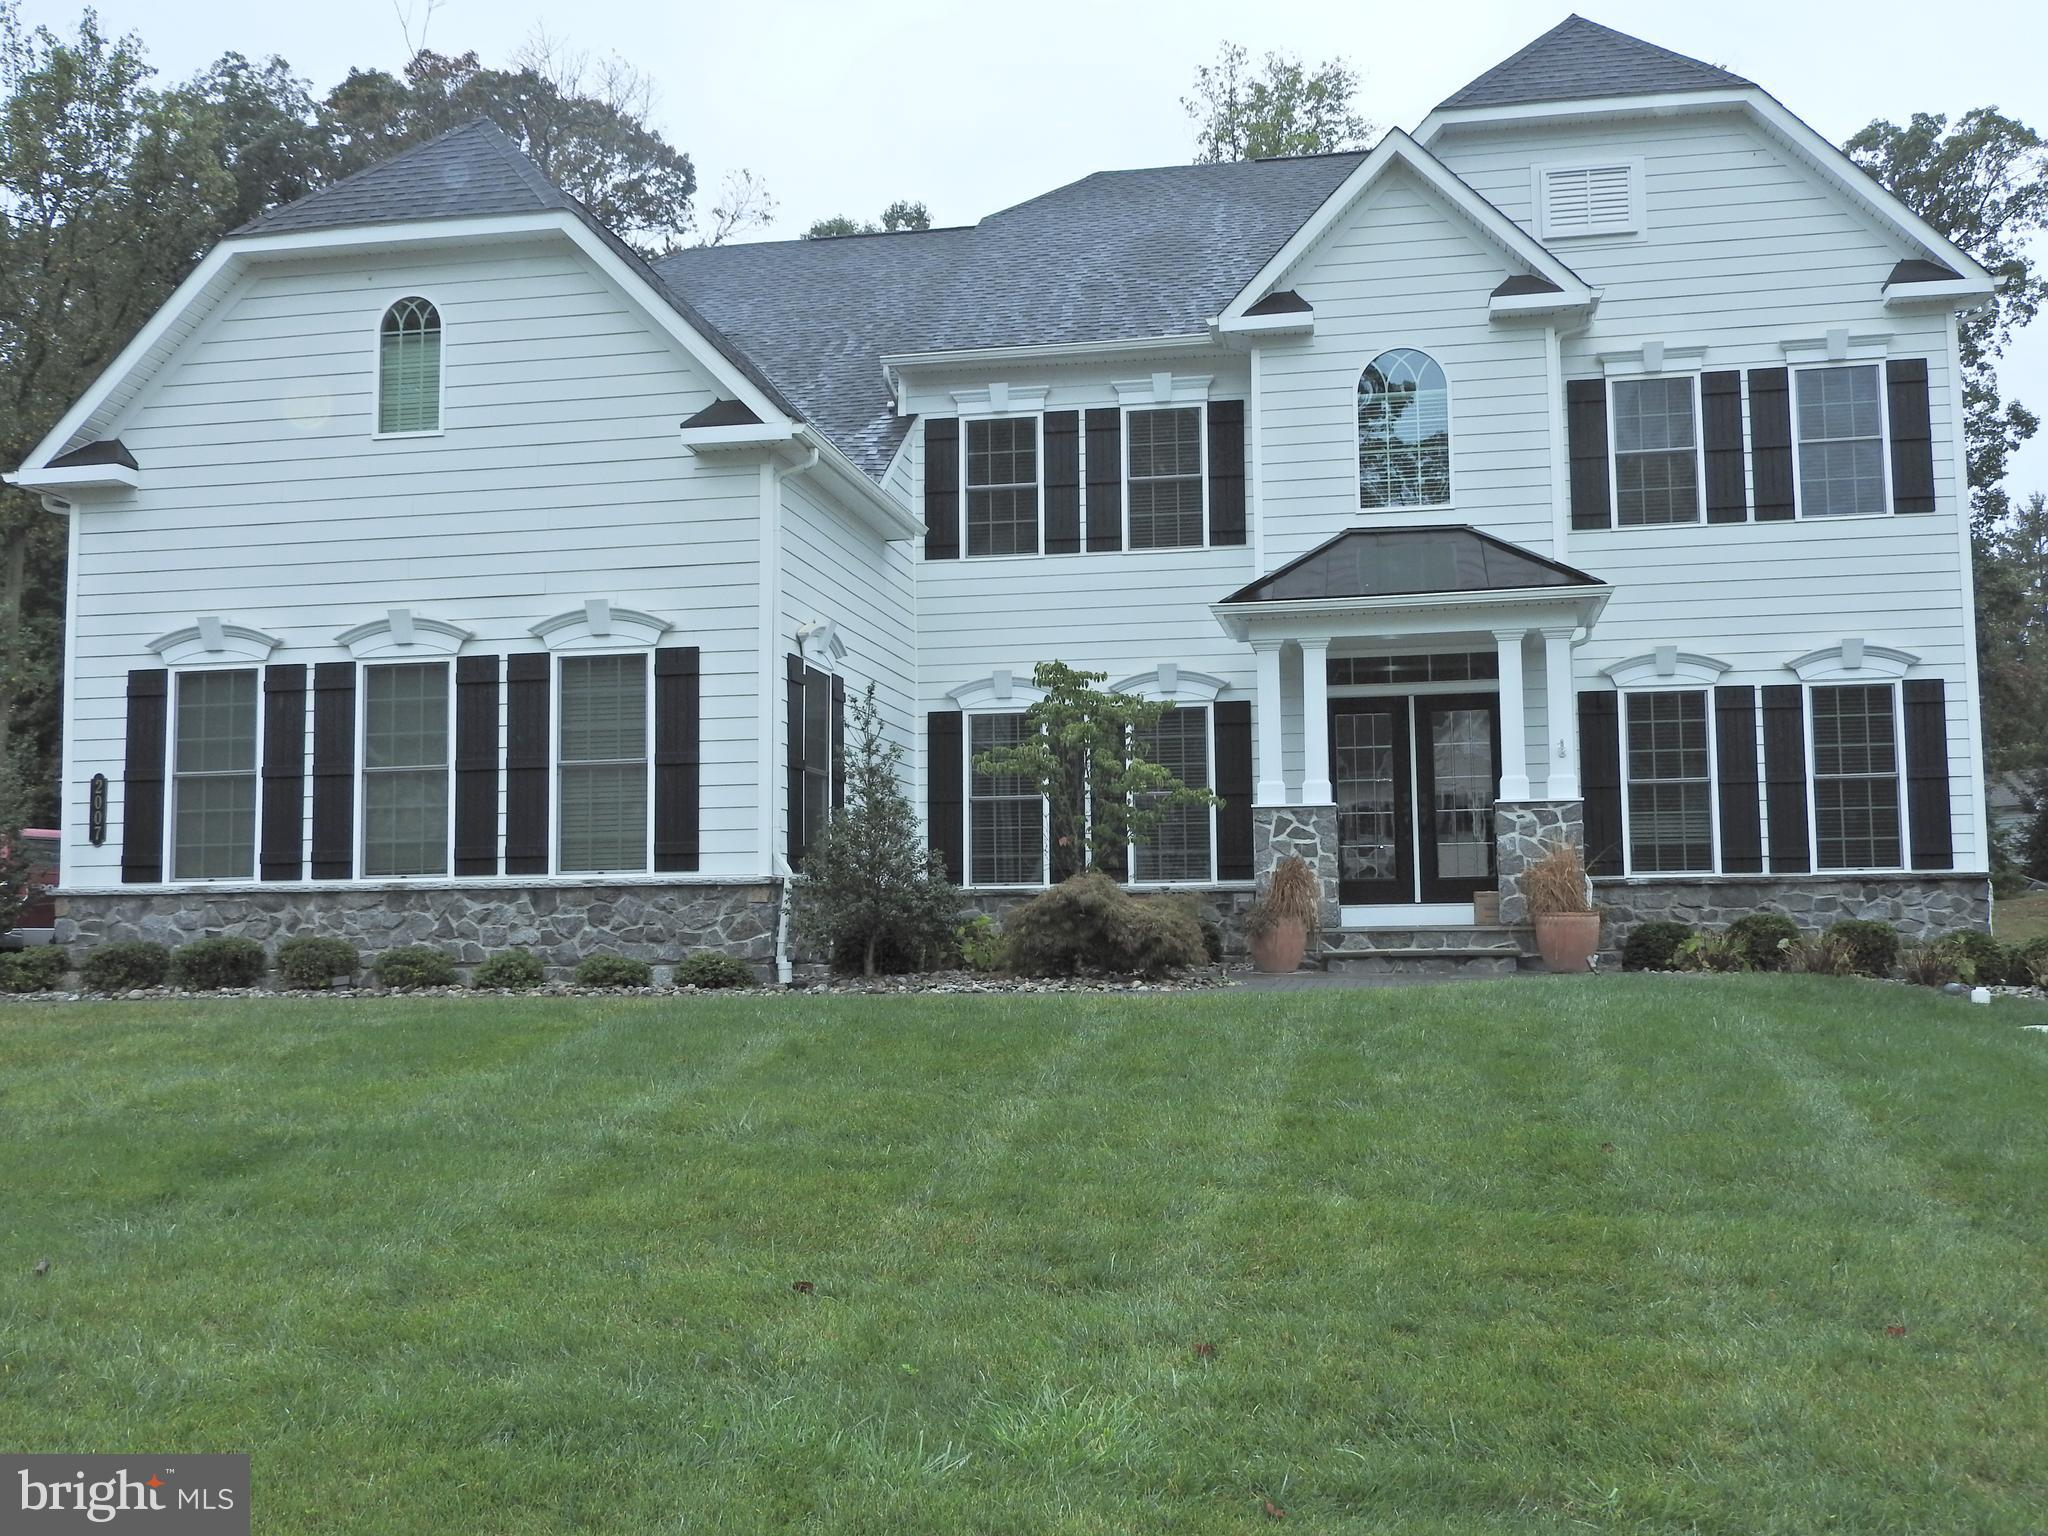 2007 WRANGLEY COURT, WEST CHESTER, PA 19380